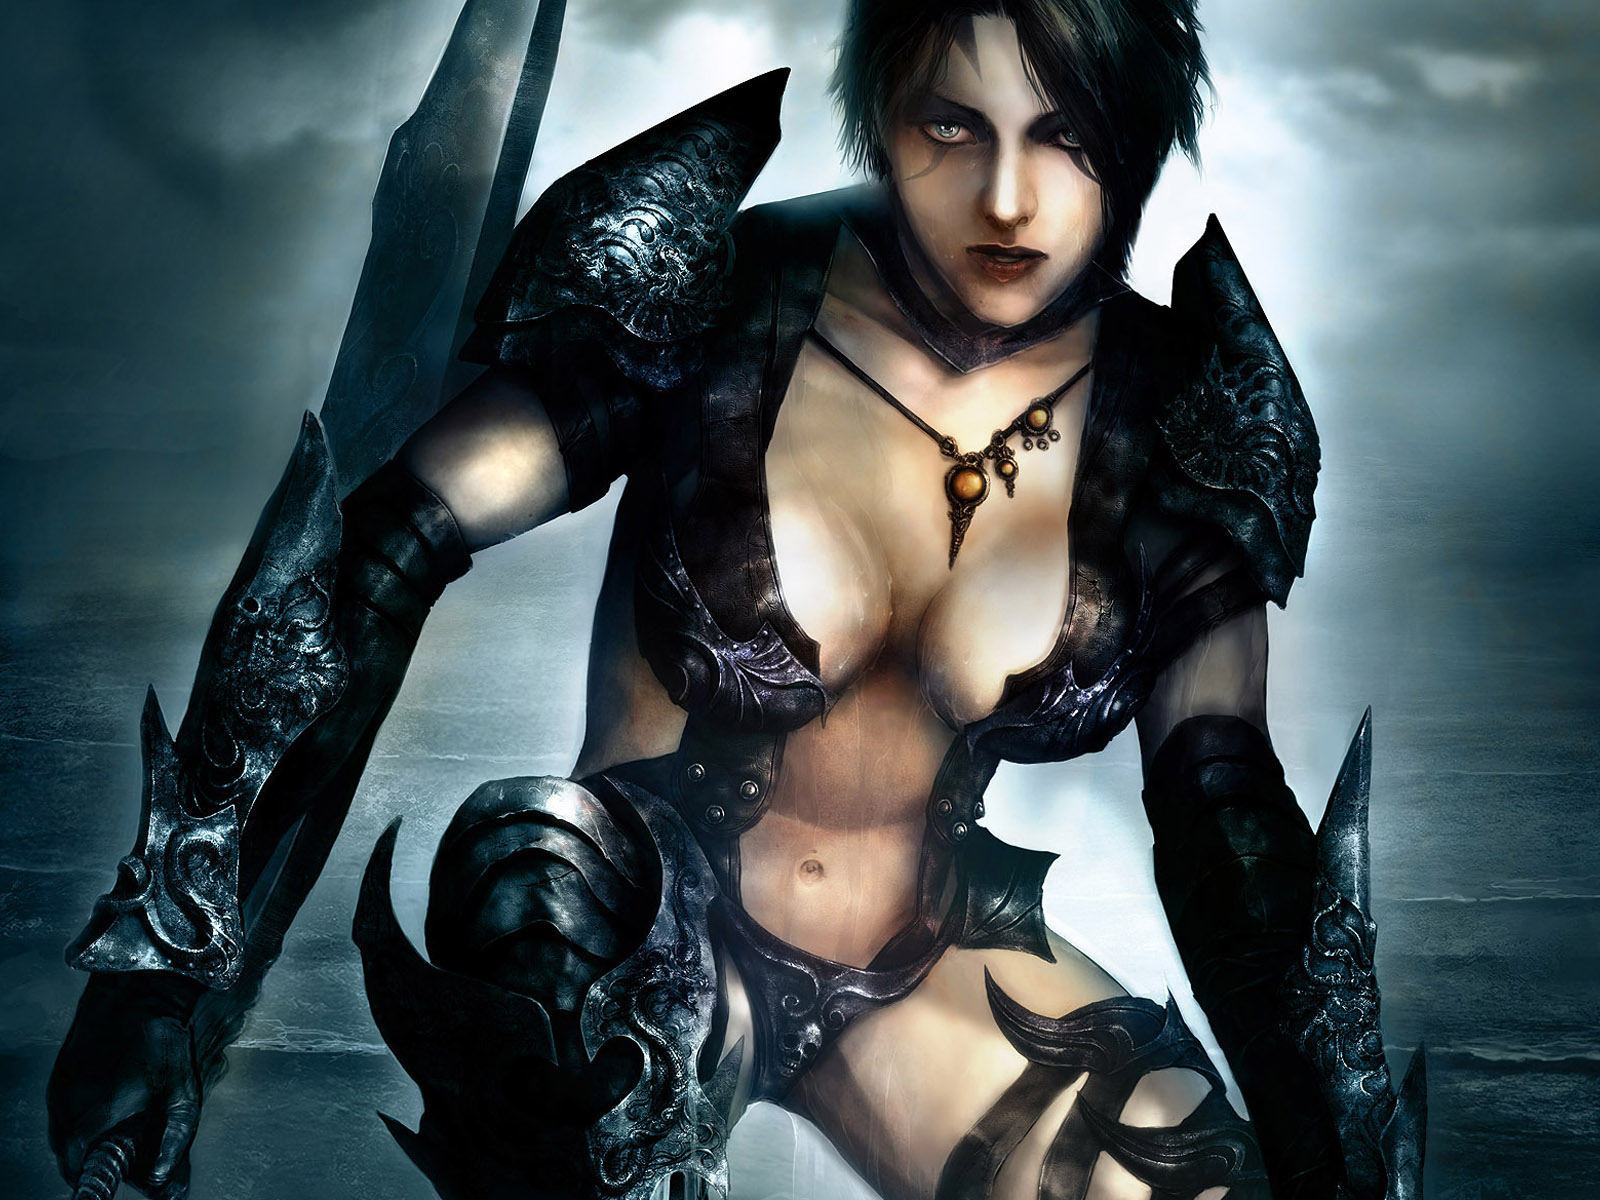 The kind fantasy gothic girl nude